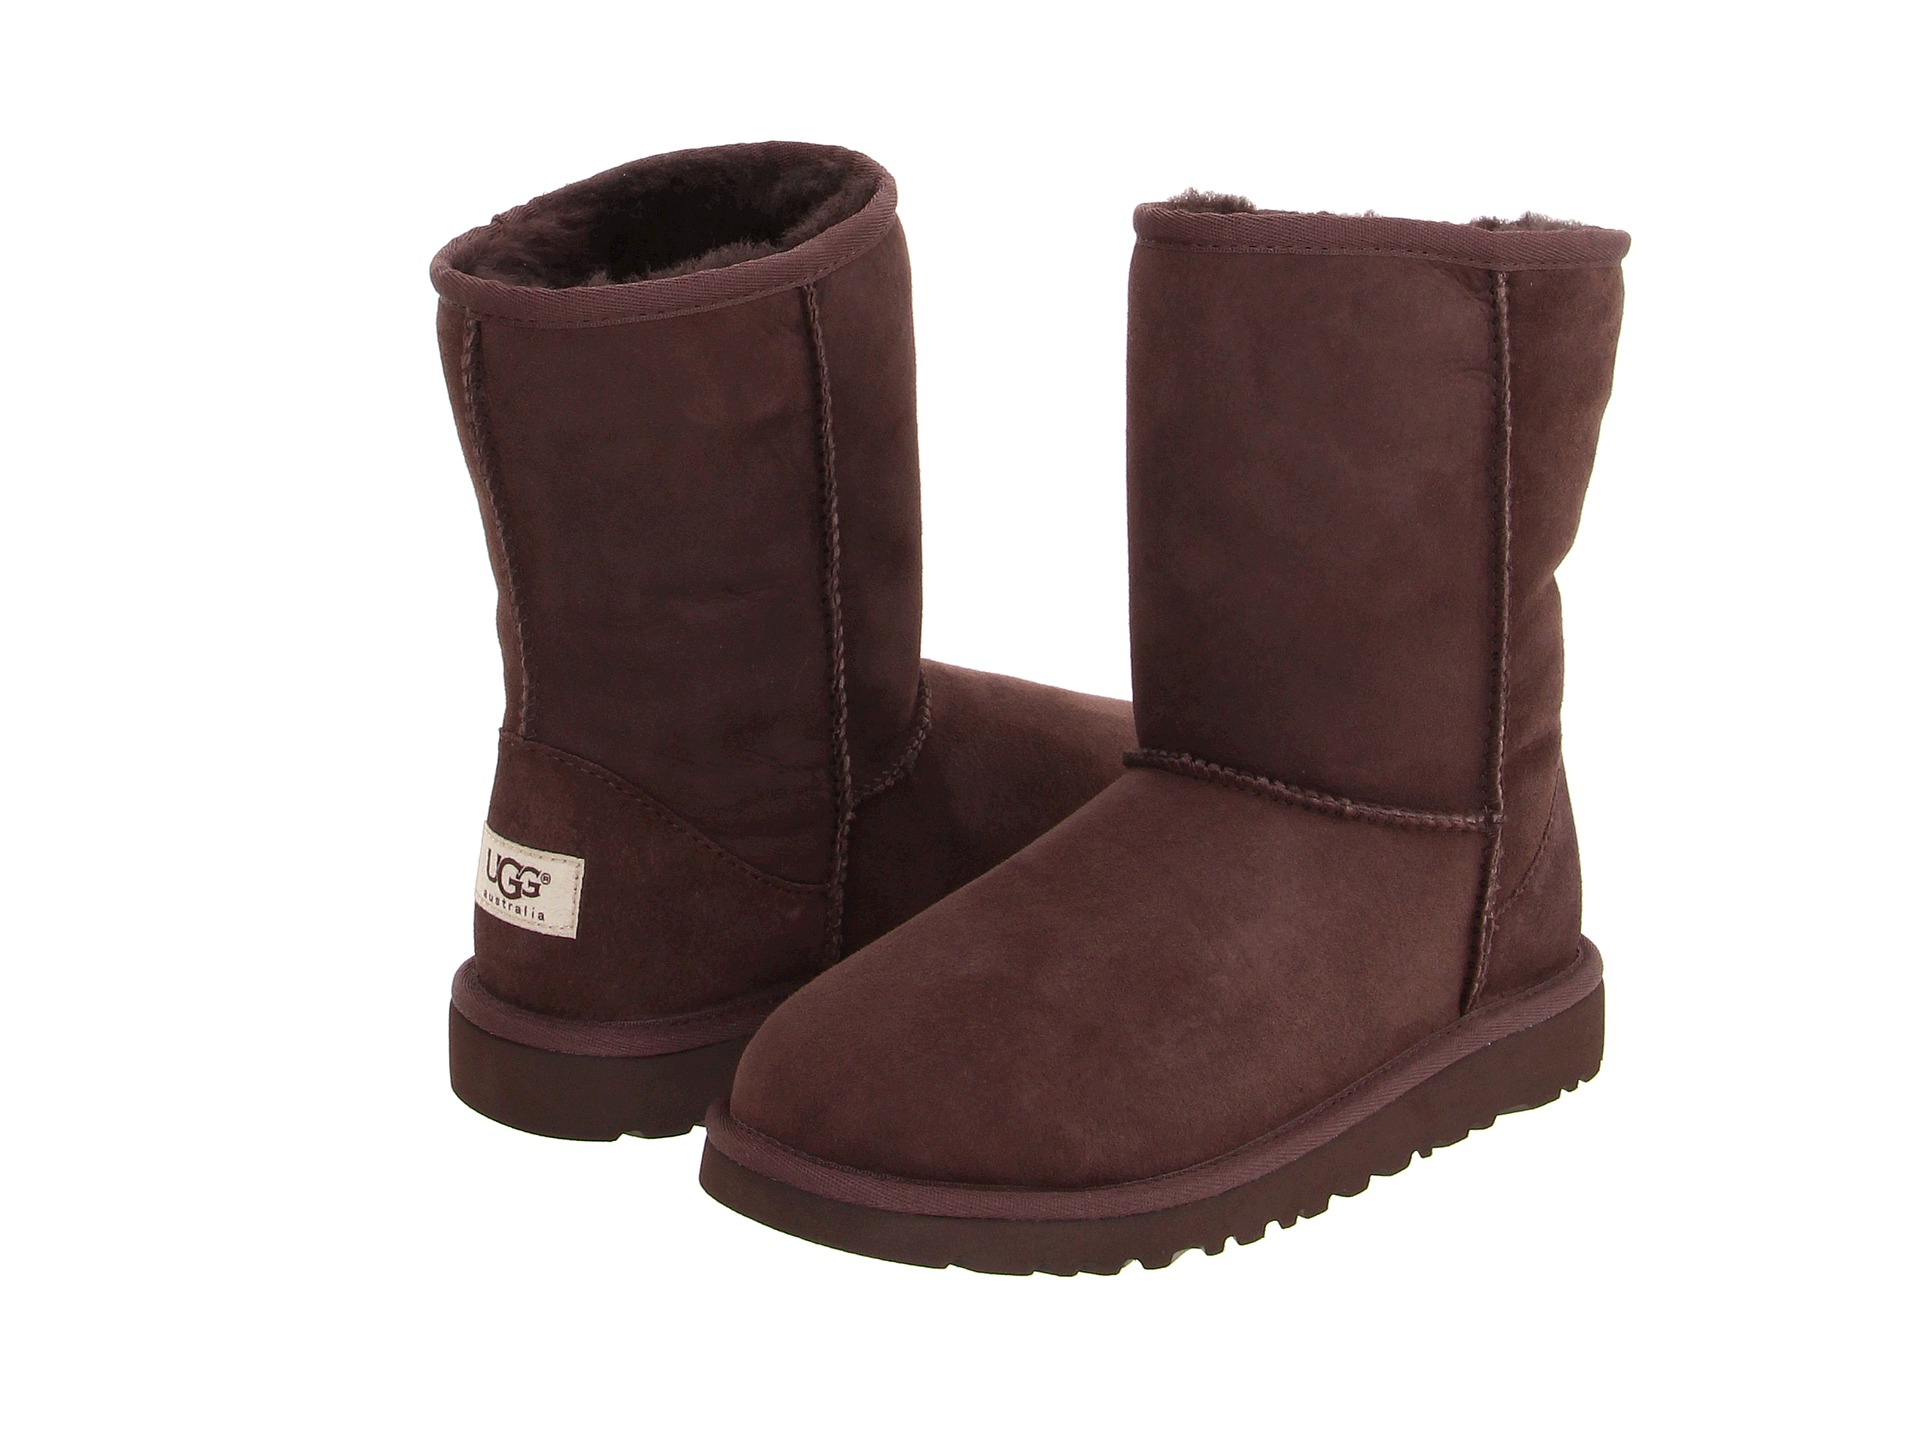 do ugg slippers run large or small